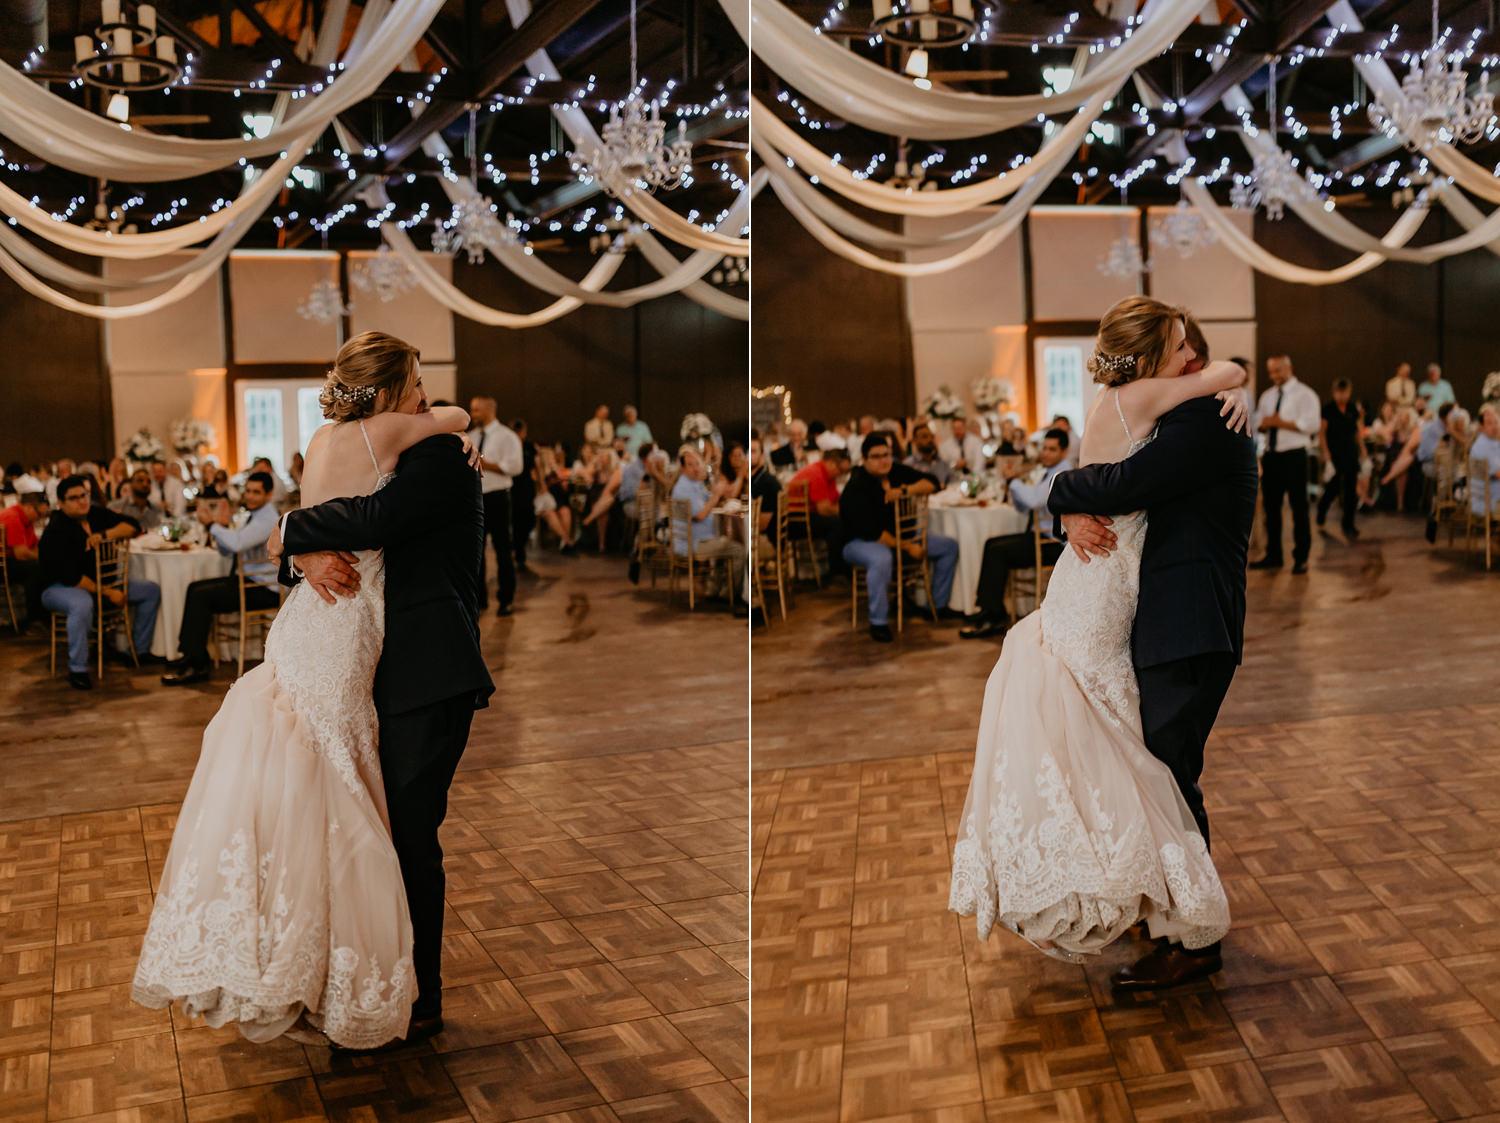 groom picking up his bride after dancing, in the middle of the dance floor